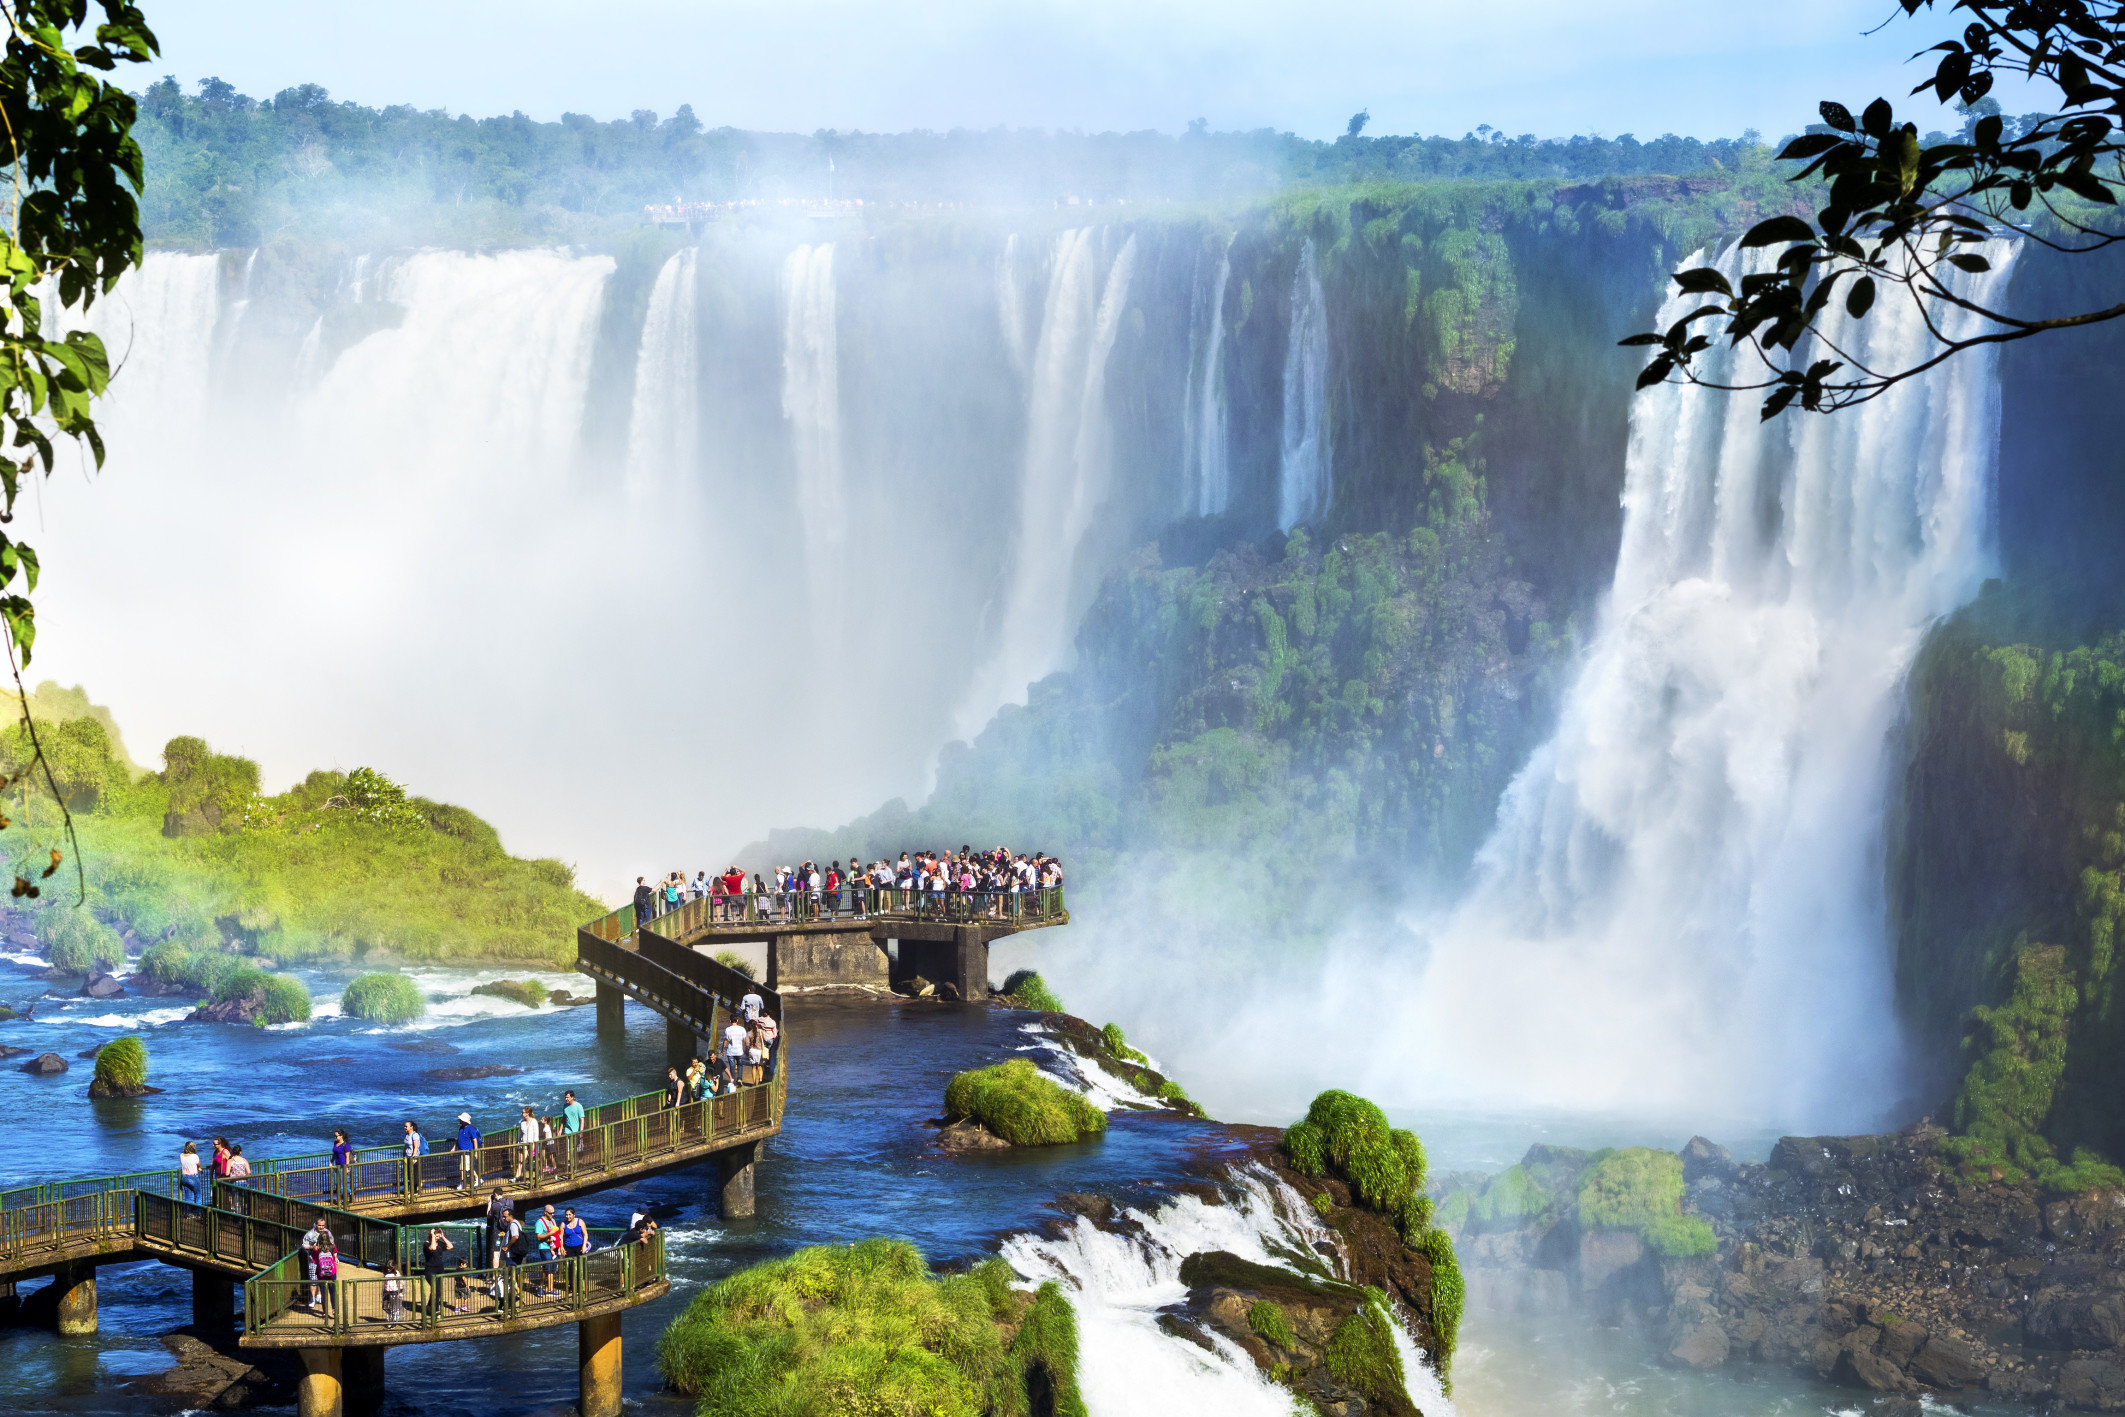 Beaches Brazil Trip Ideas tree water Nature Waterfall outdoor body of water River water feature Jungle steam park smoke wave Forest